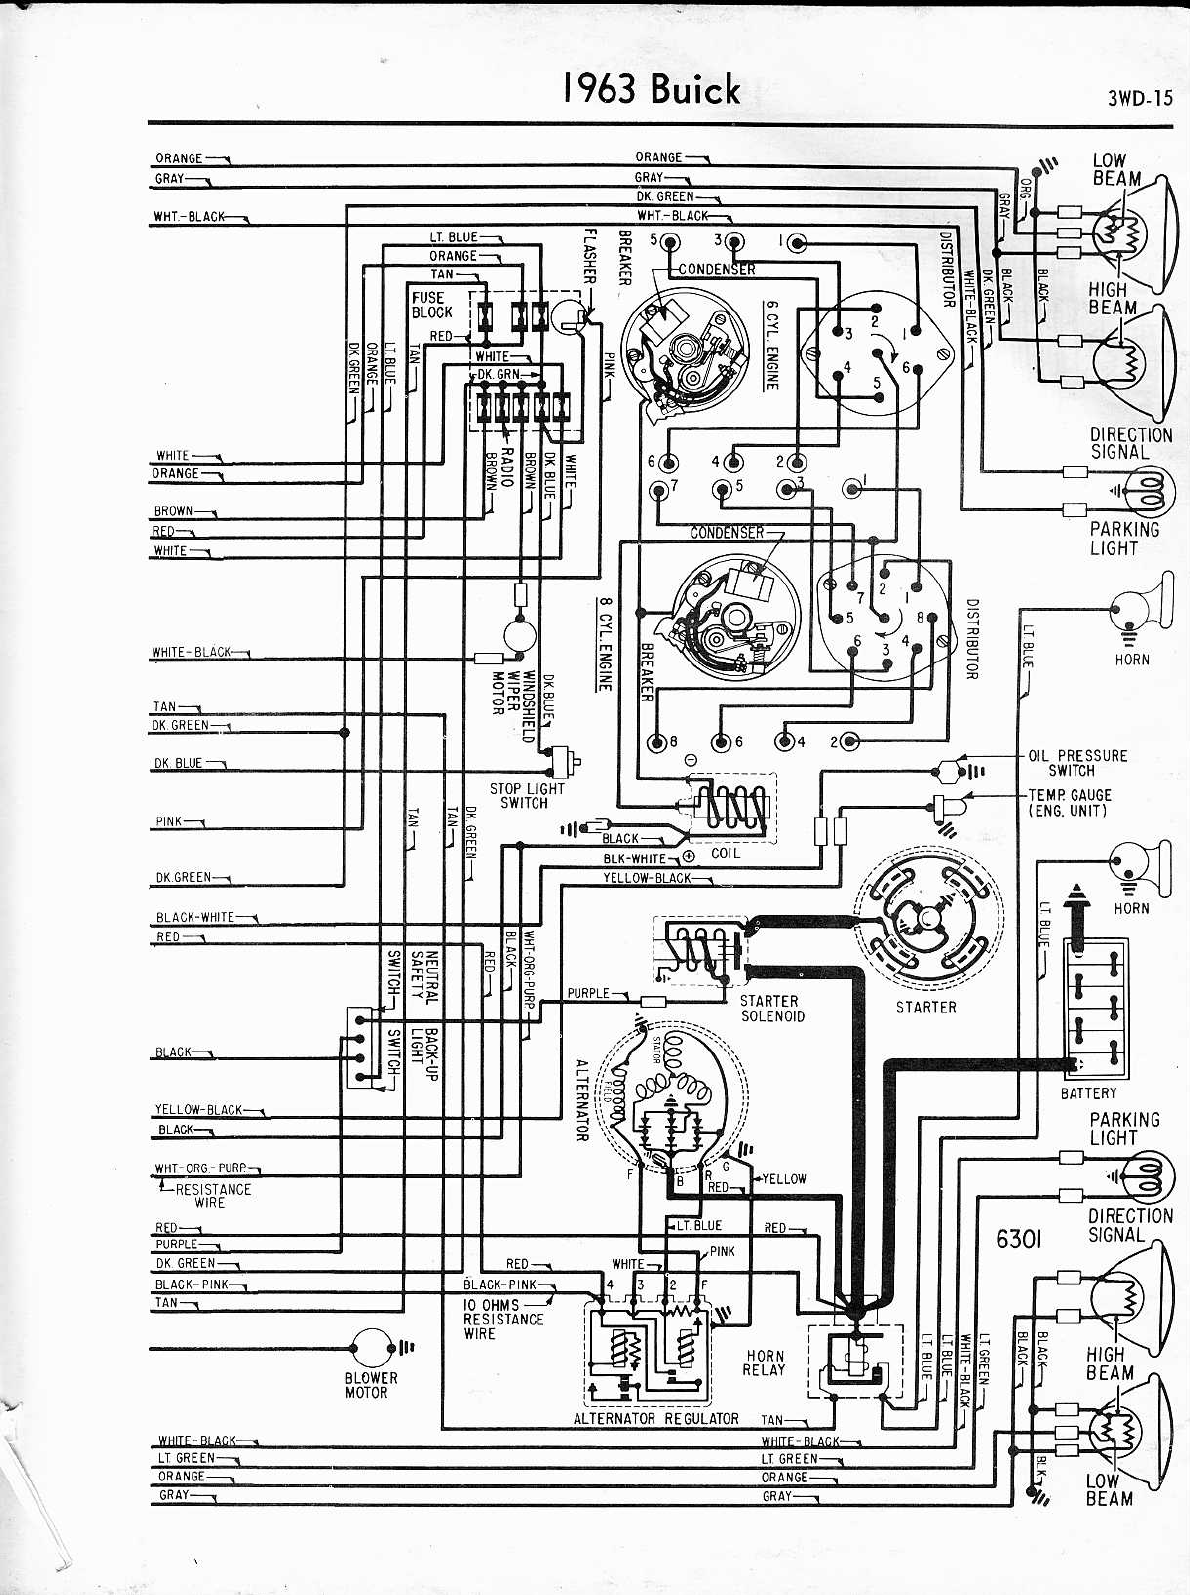 67 Mustang Voltage Regulator Wiring Diagram